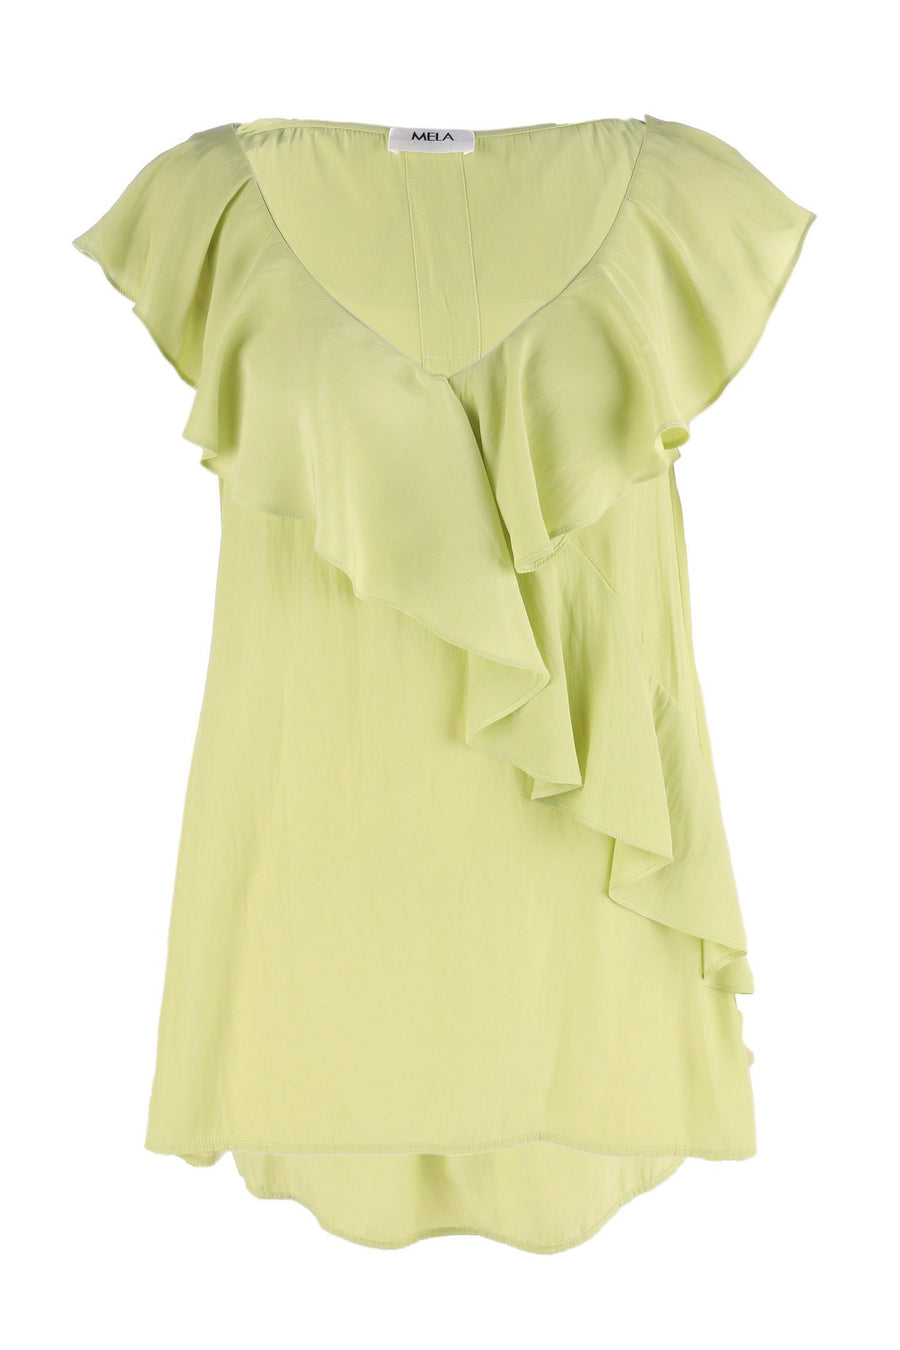 wrap-ruffle-tank-in-lime-by-mela-purdie